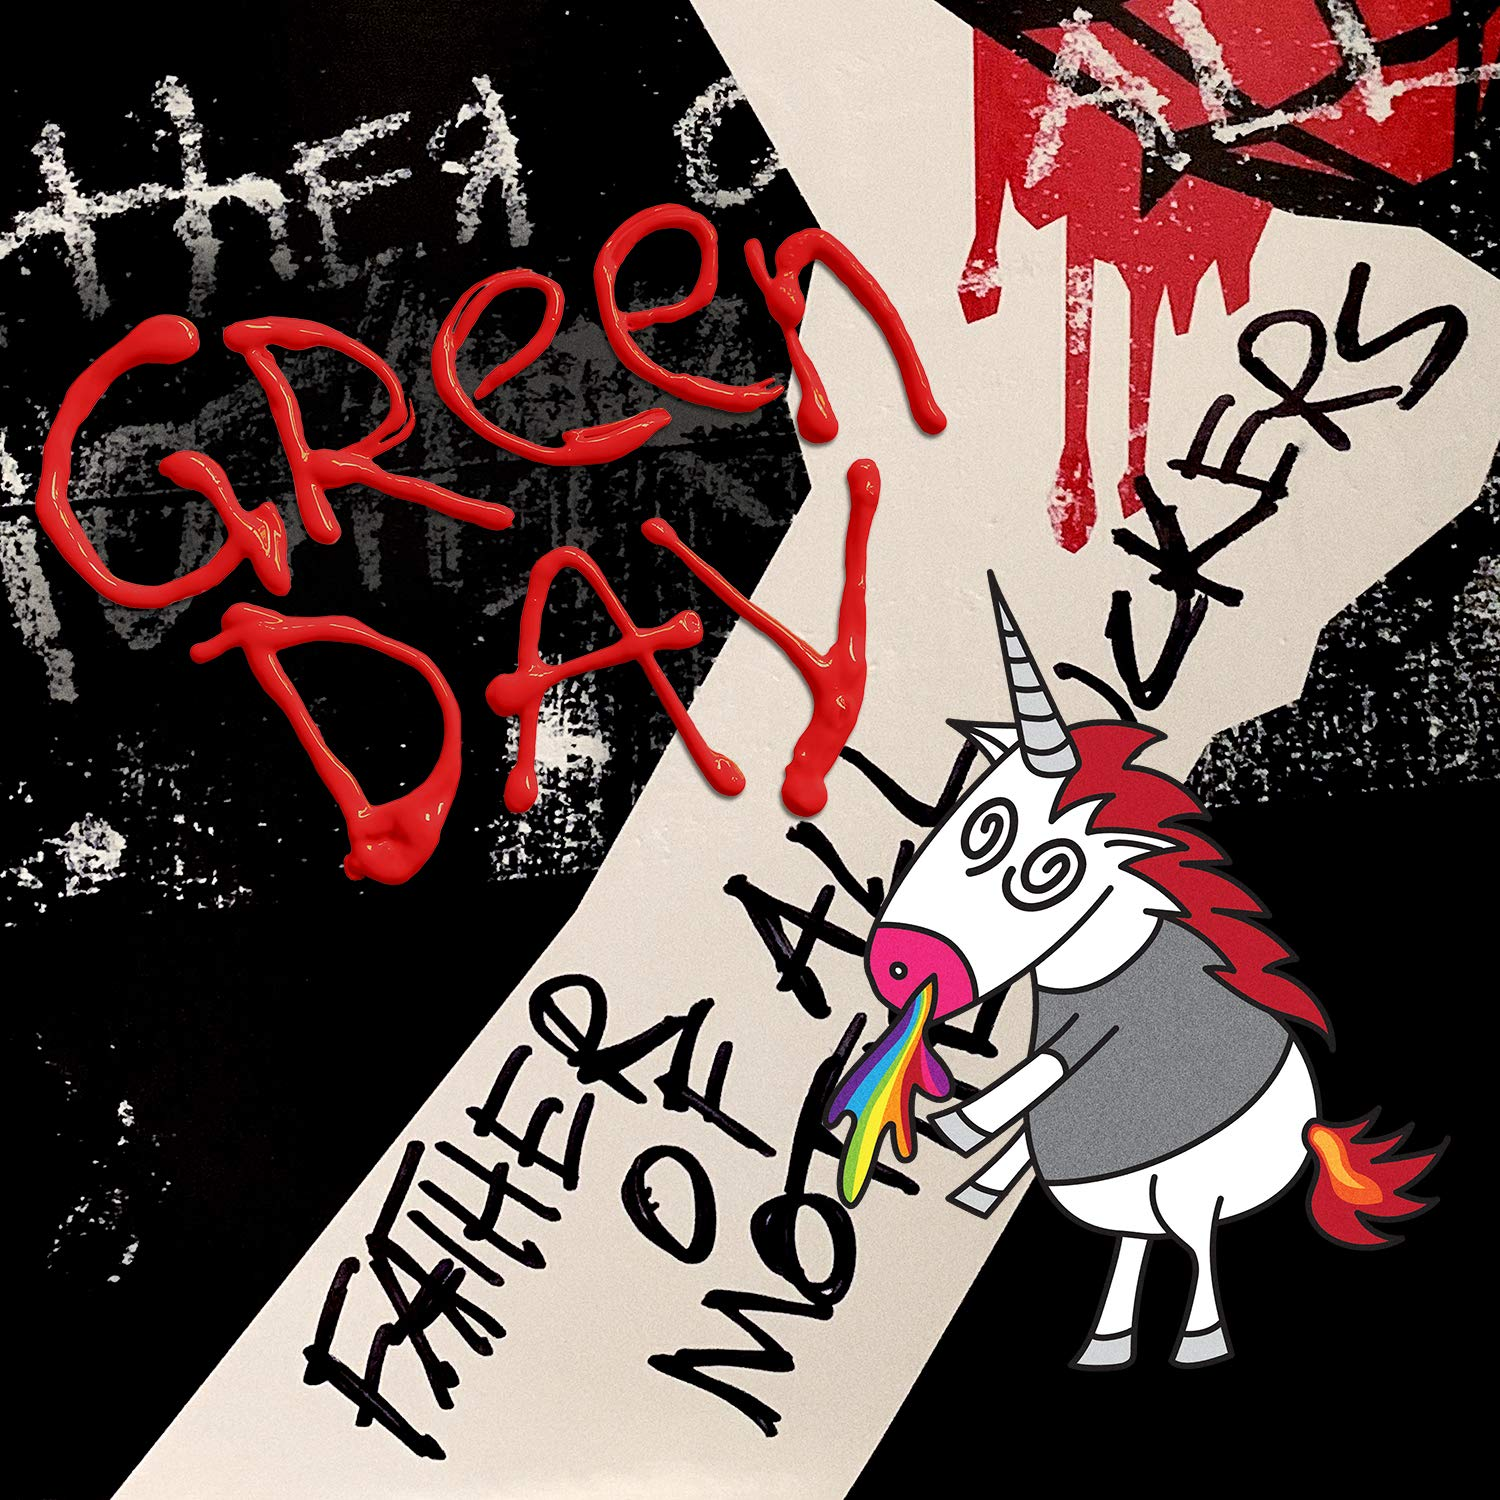 green-day-father-of-all.jpg